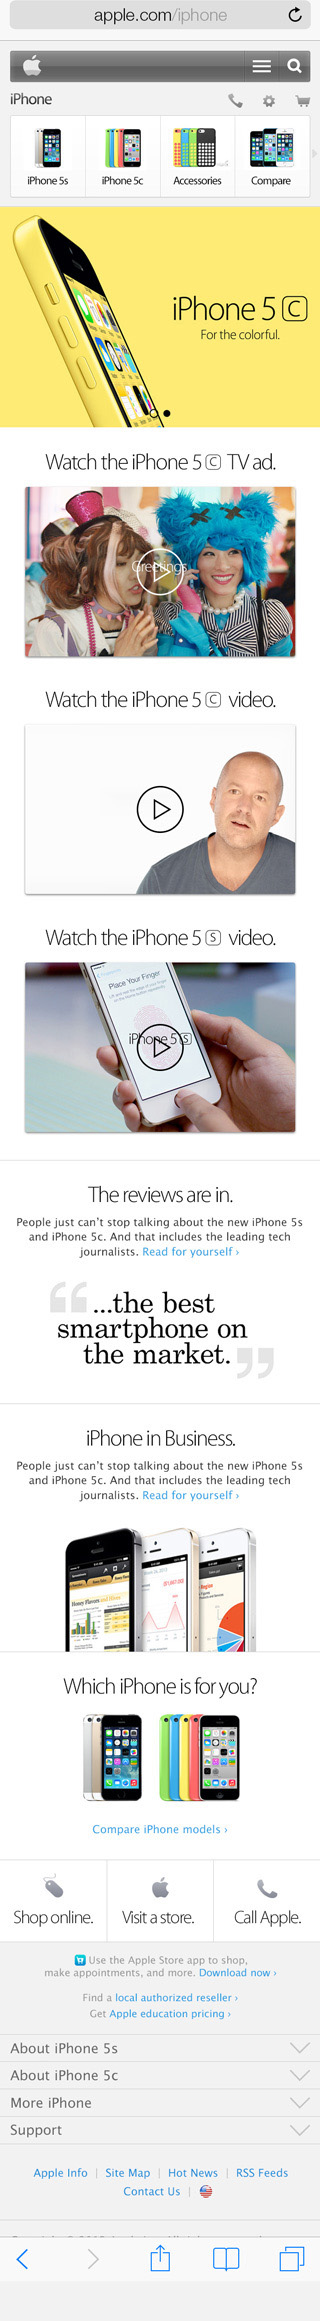 iphone 5c website